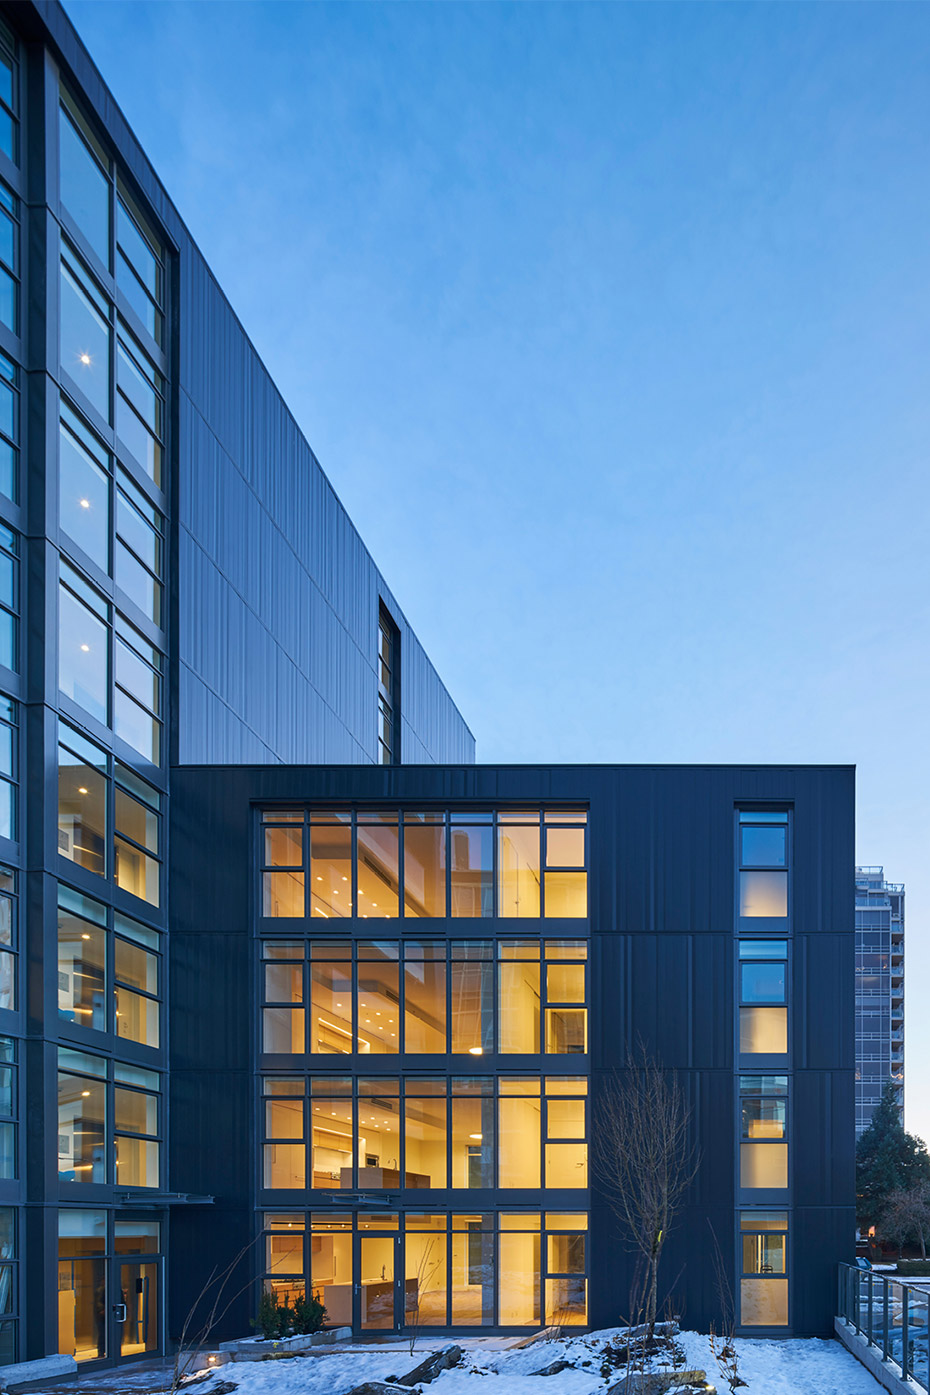 office of mcfarlane biggar architects + designers, Vancouver, British Columbia, Canada, 1555 West 8th Avenue